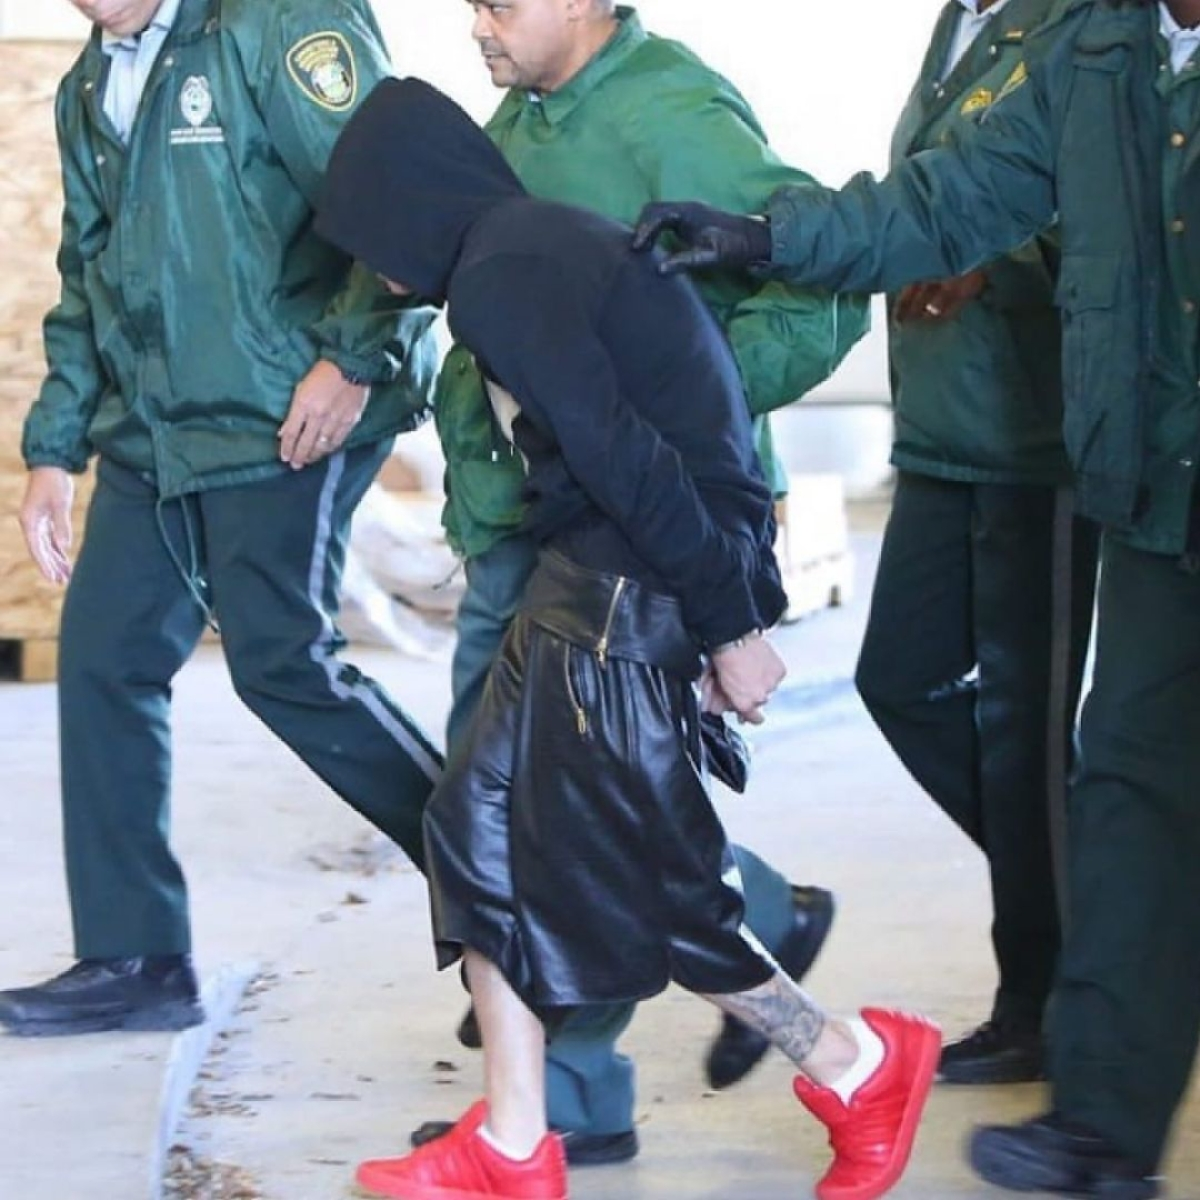 'Not my finest hour': Justin Bieber recollects incident of being arrested